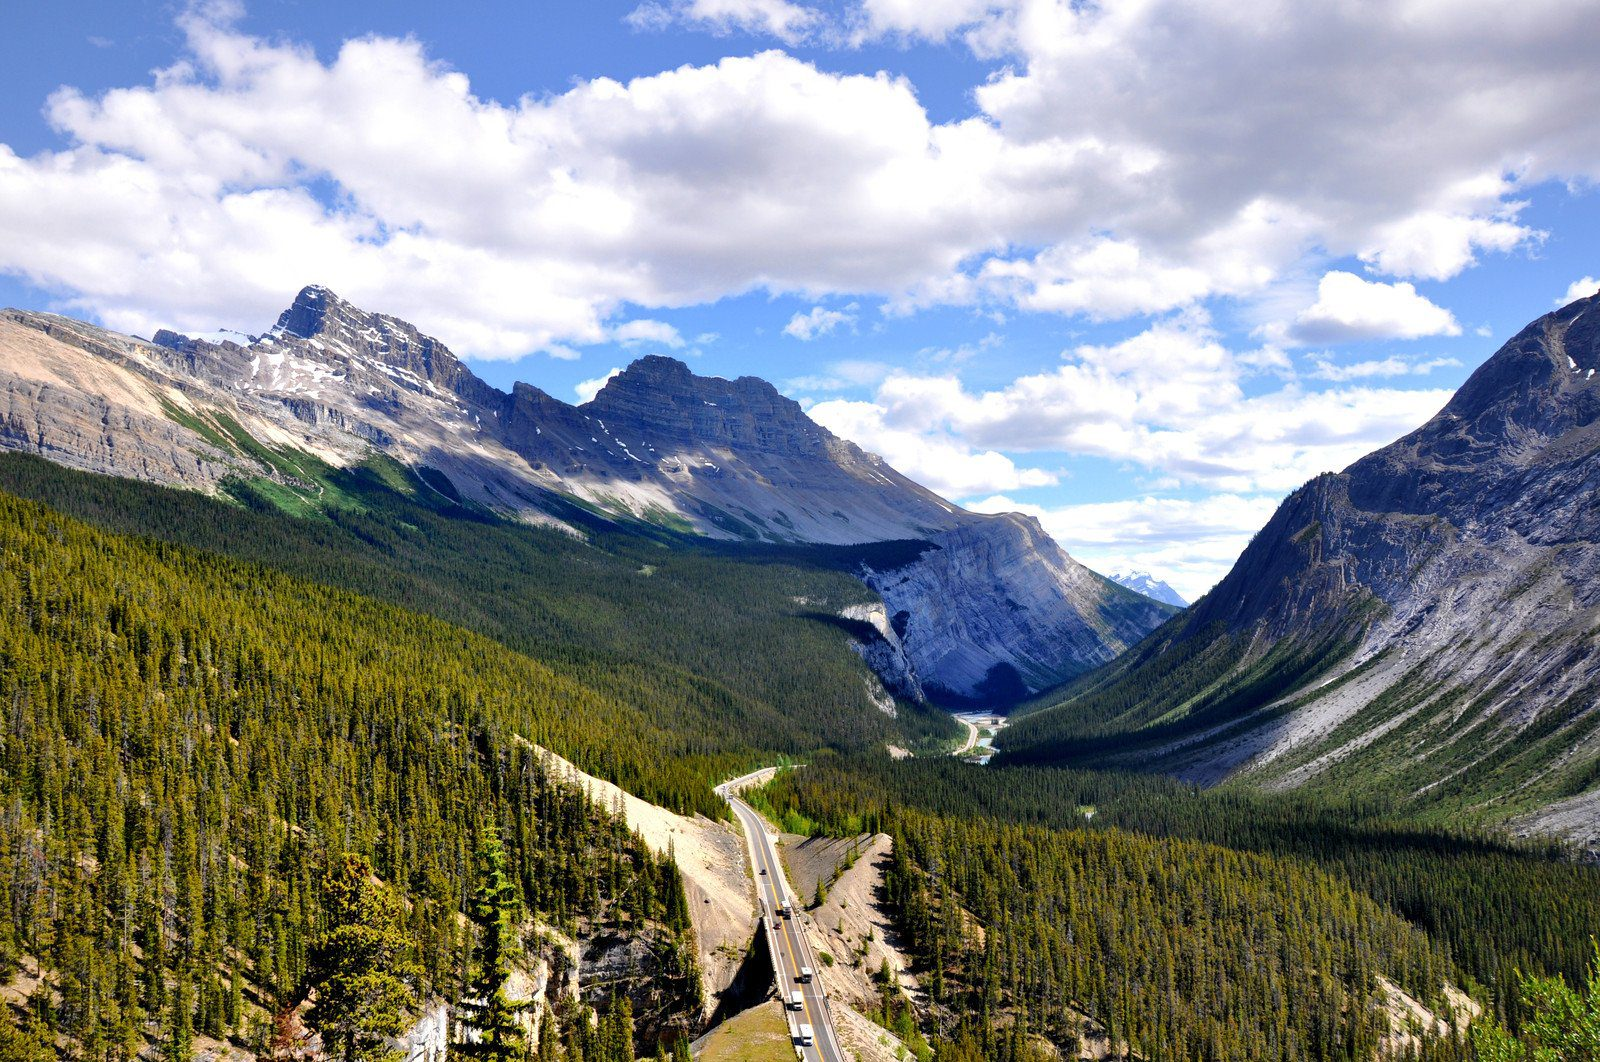 Views along the Icefields Parkway in Canada